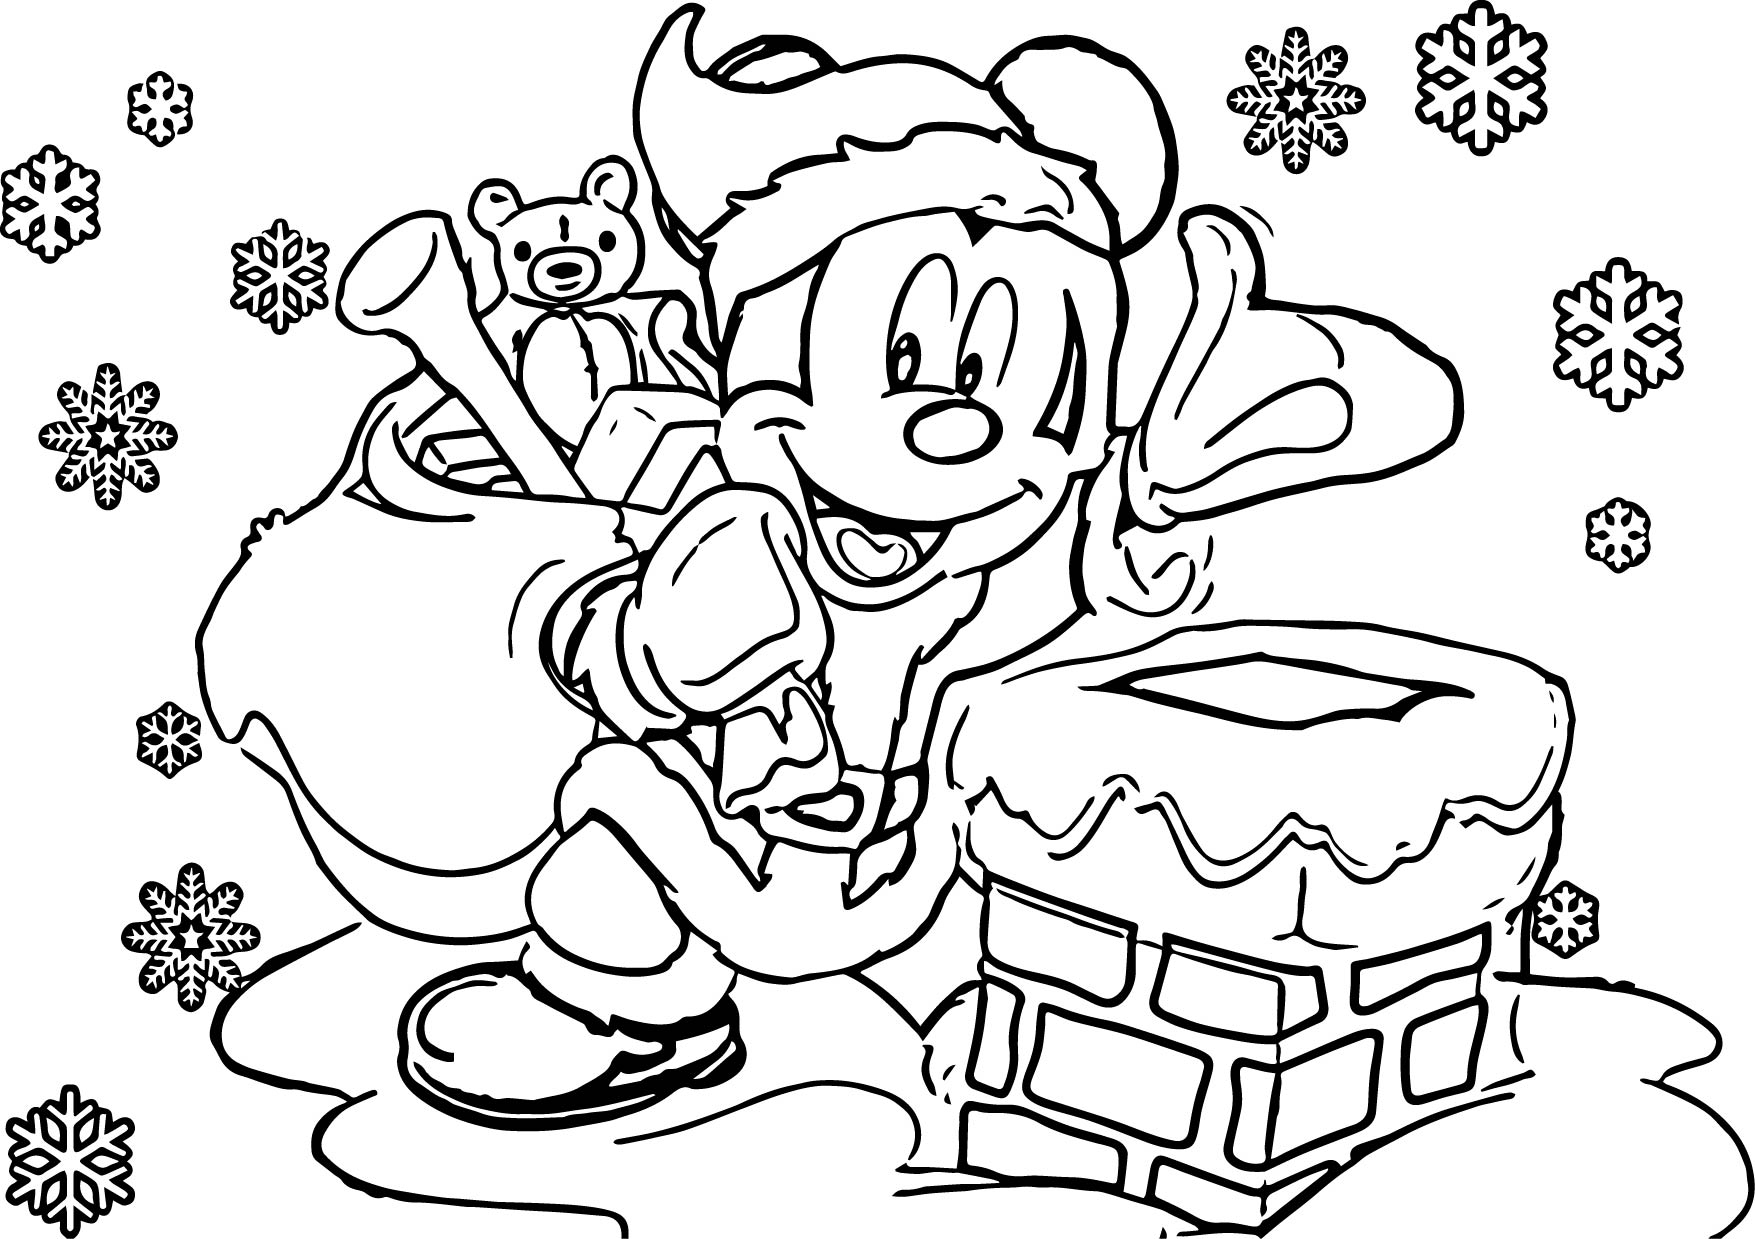 Santa Coloring Activities With Pages For Adults Free Books